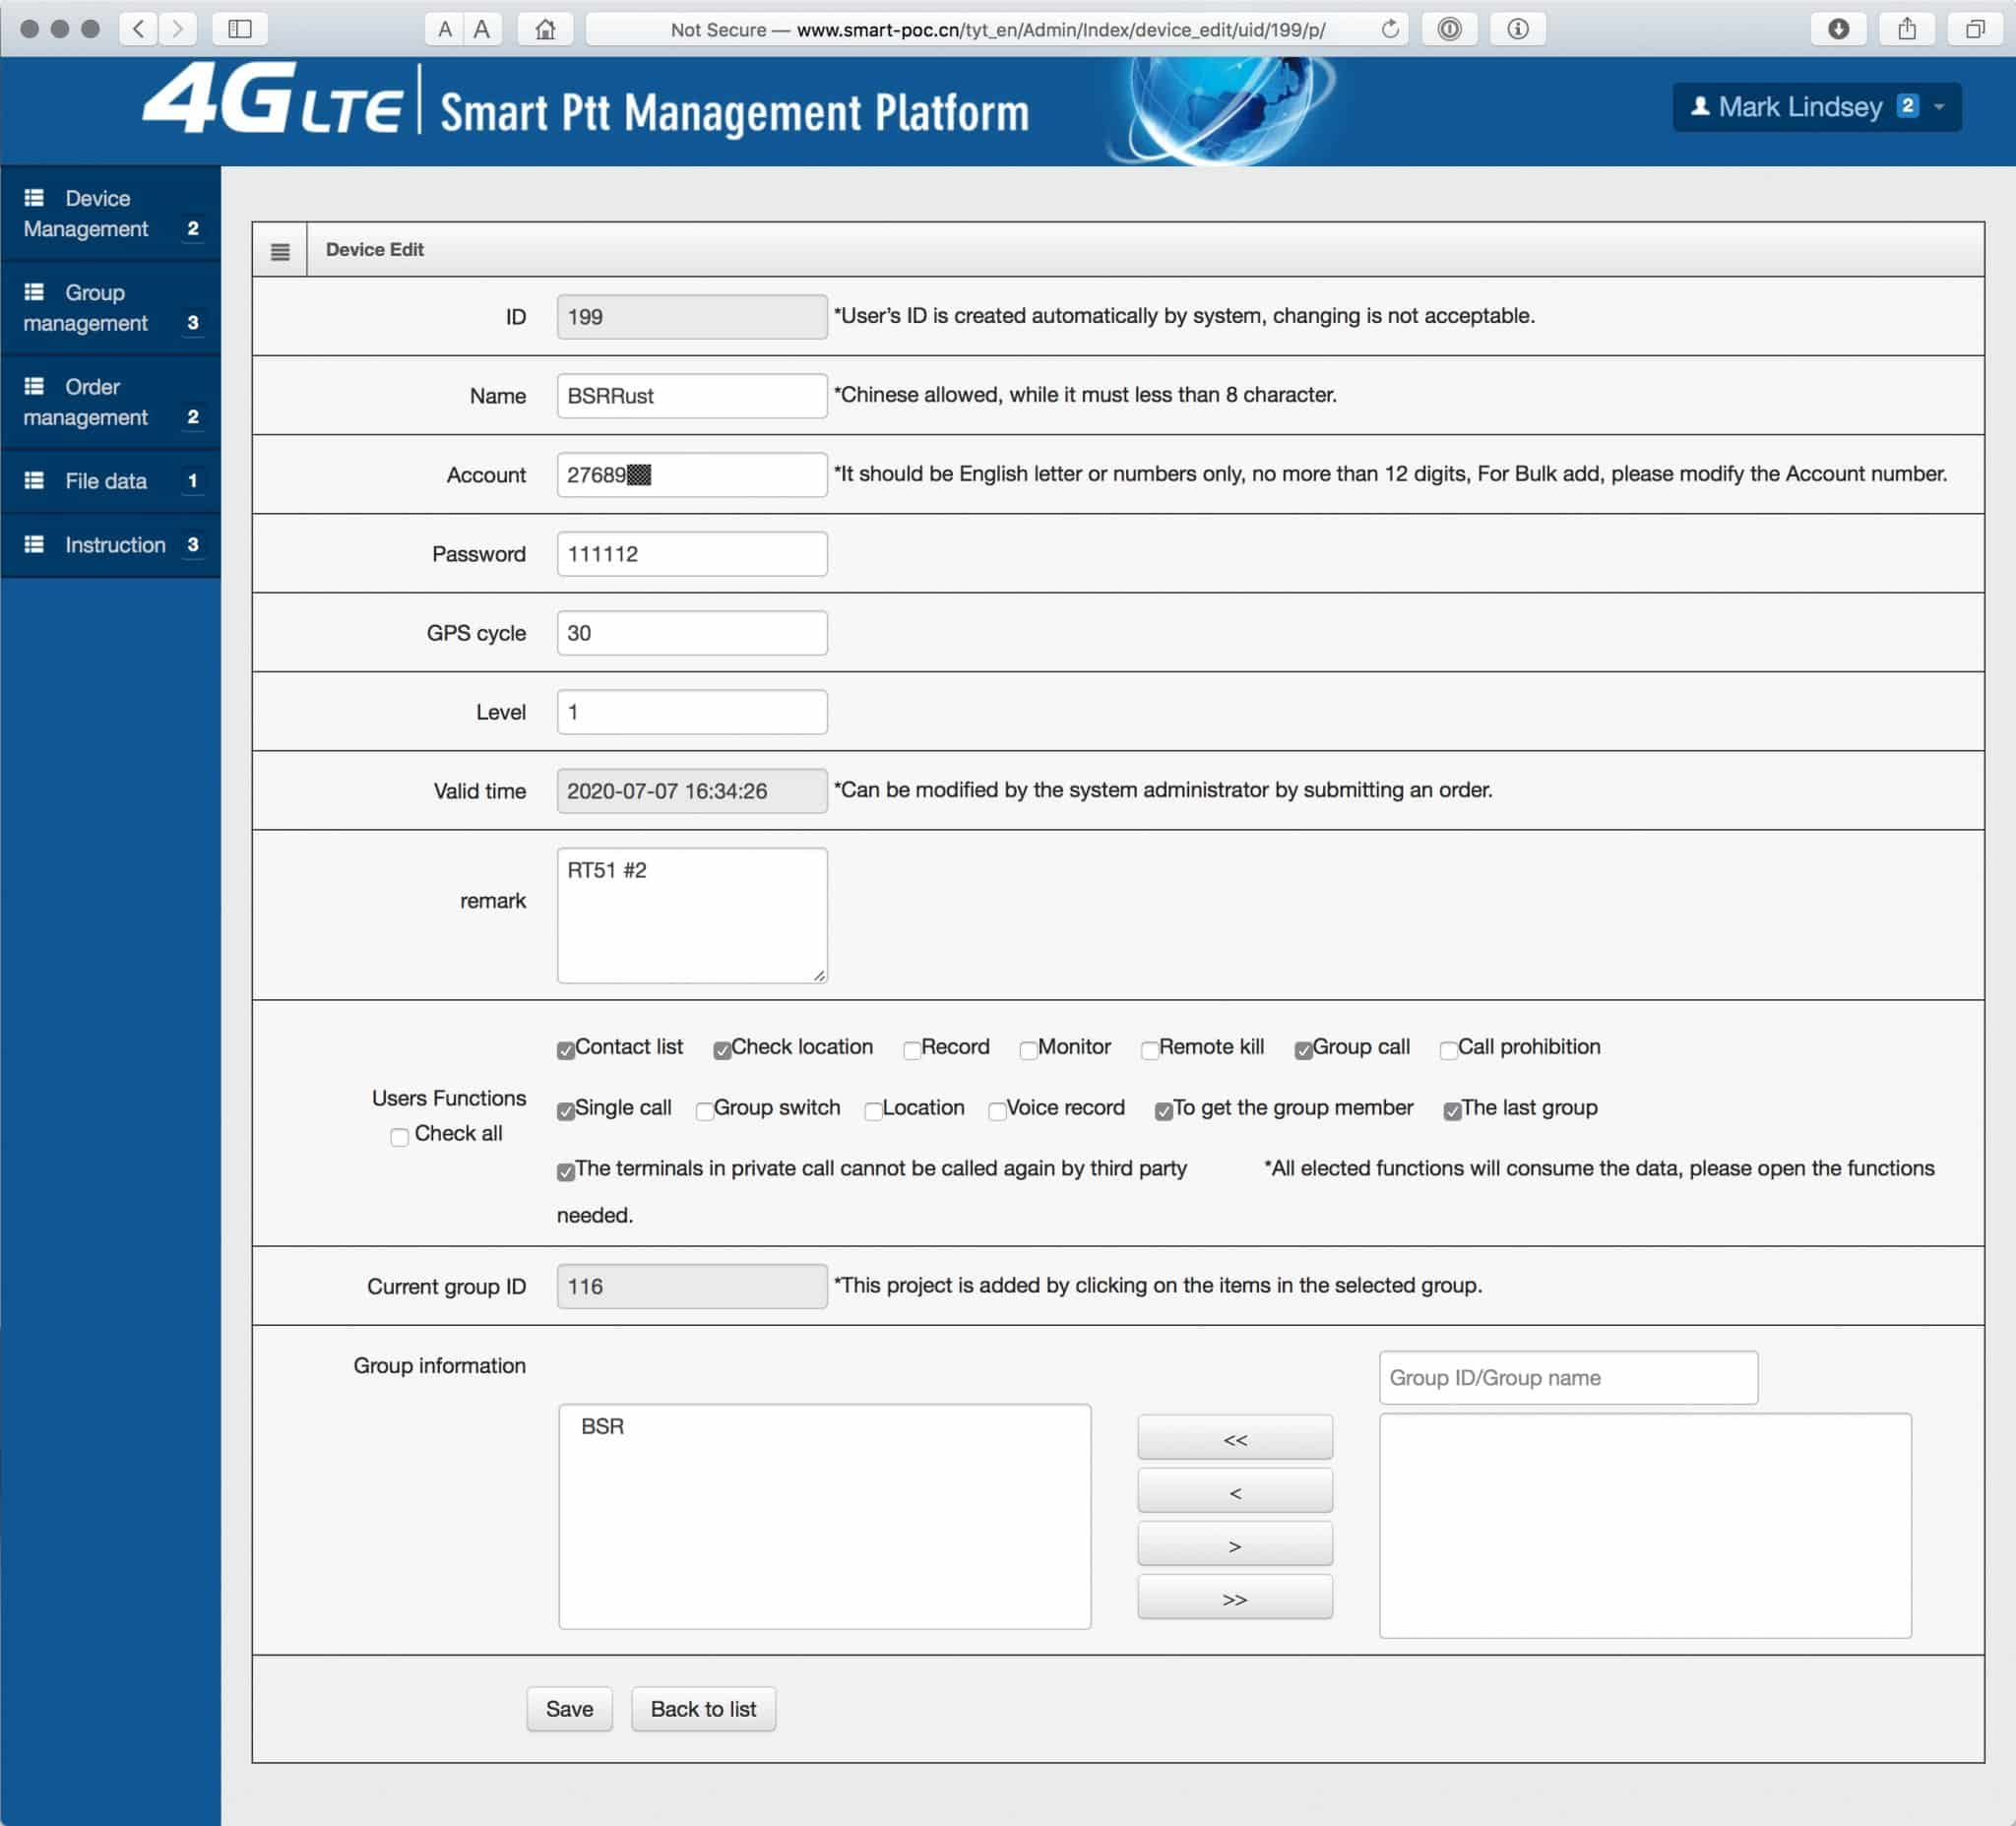 Another screenshot of the Smart Ptt Management Platform's Modify Device page